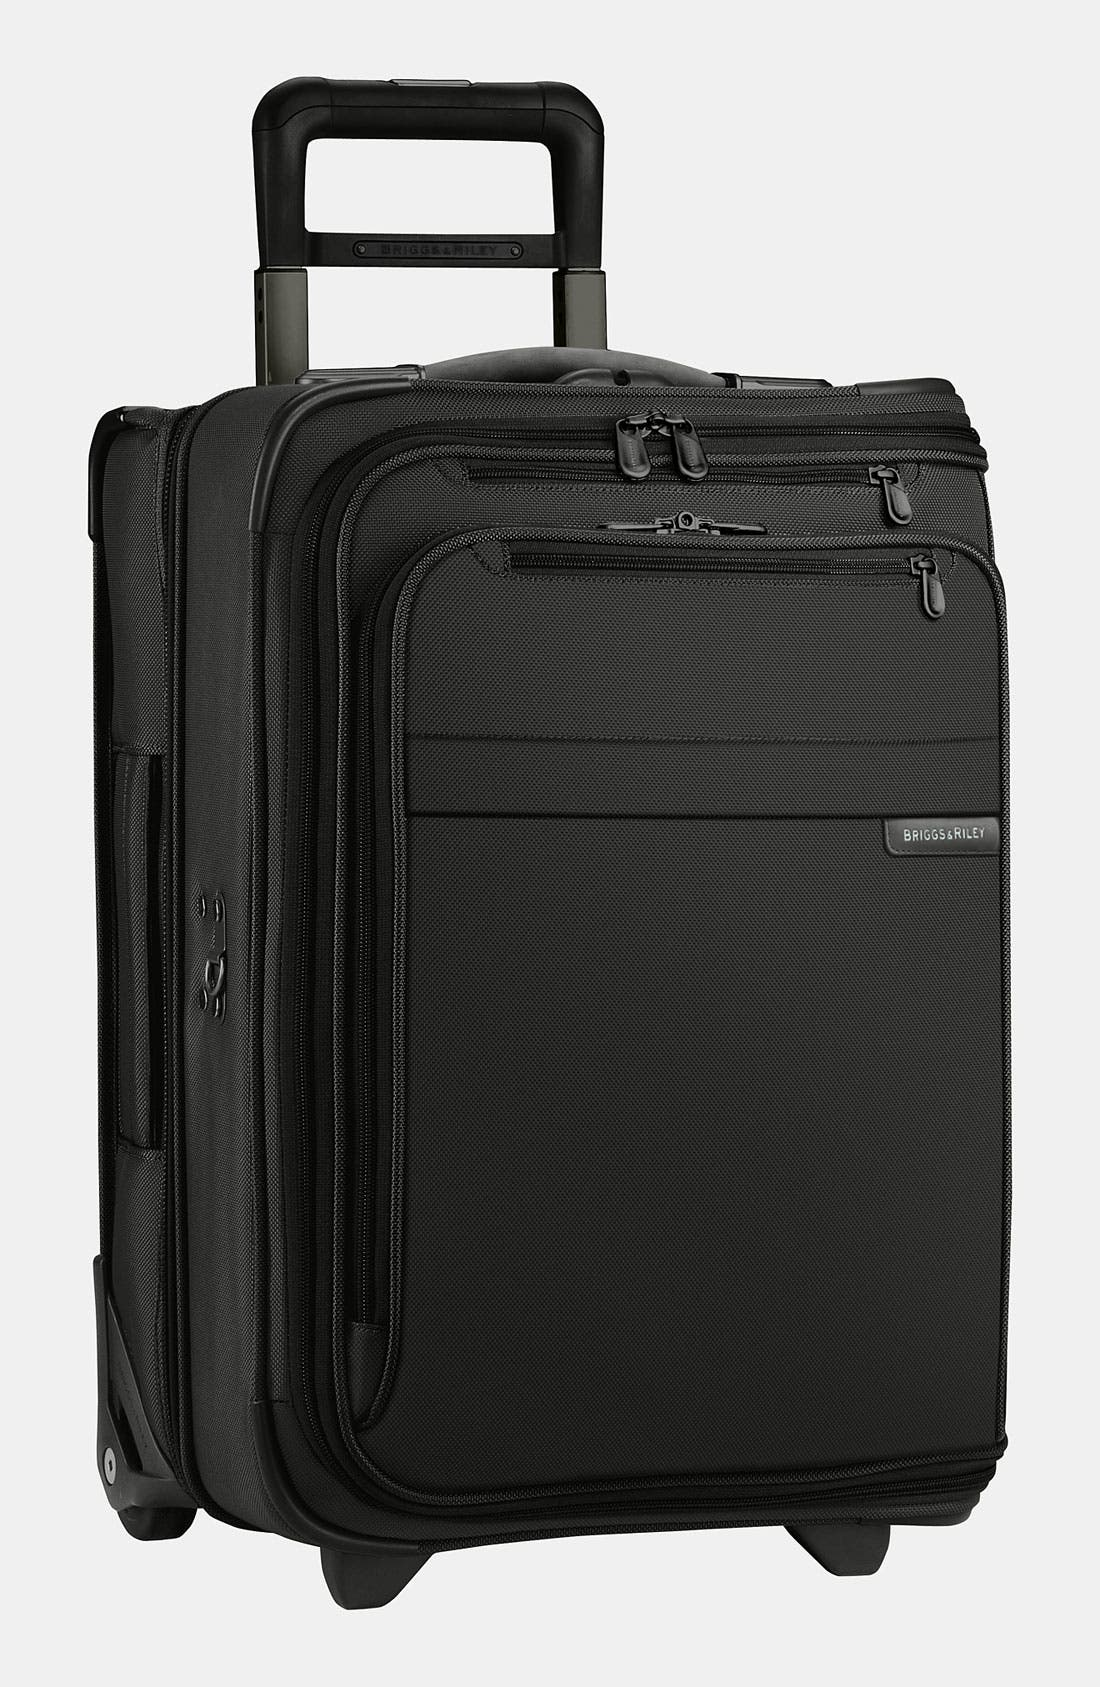 BRIGGS & RILEY 'Baseline - Domestic' Rolling Carry-On